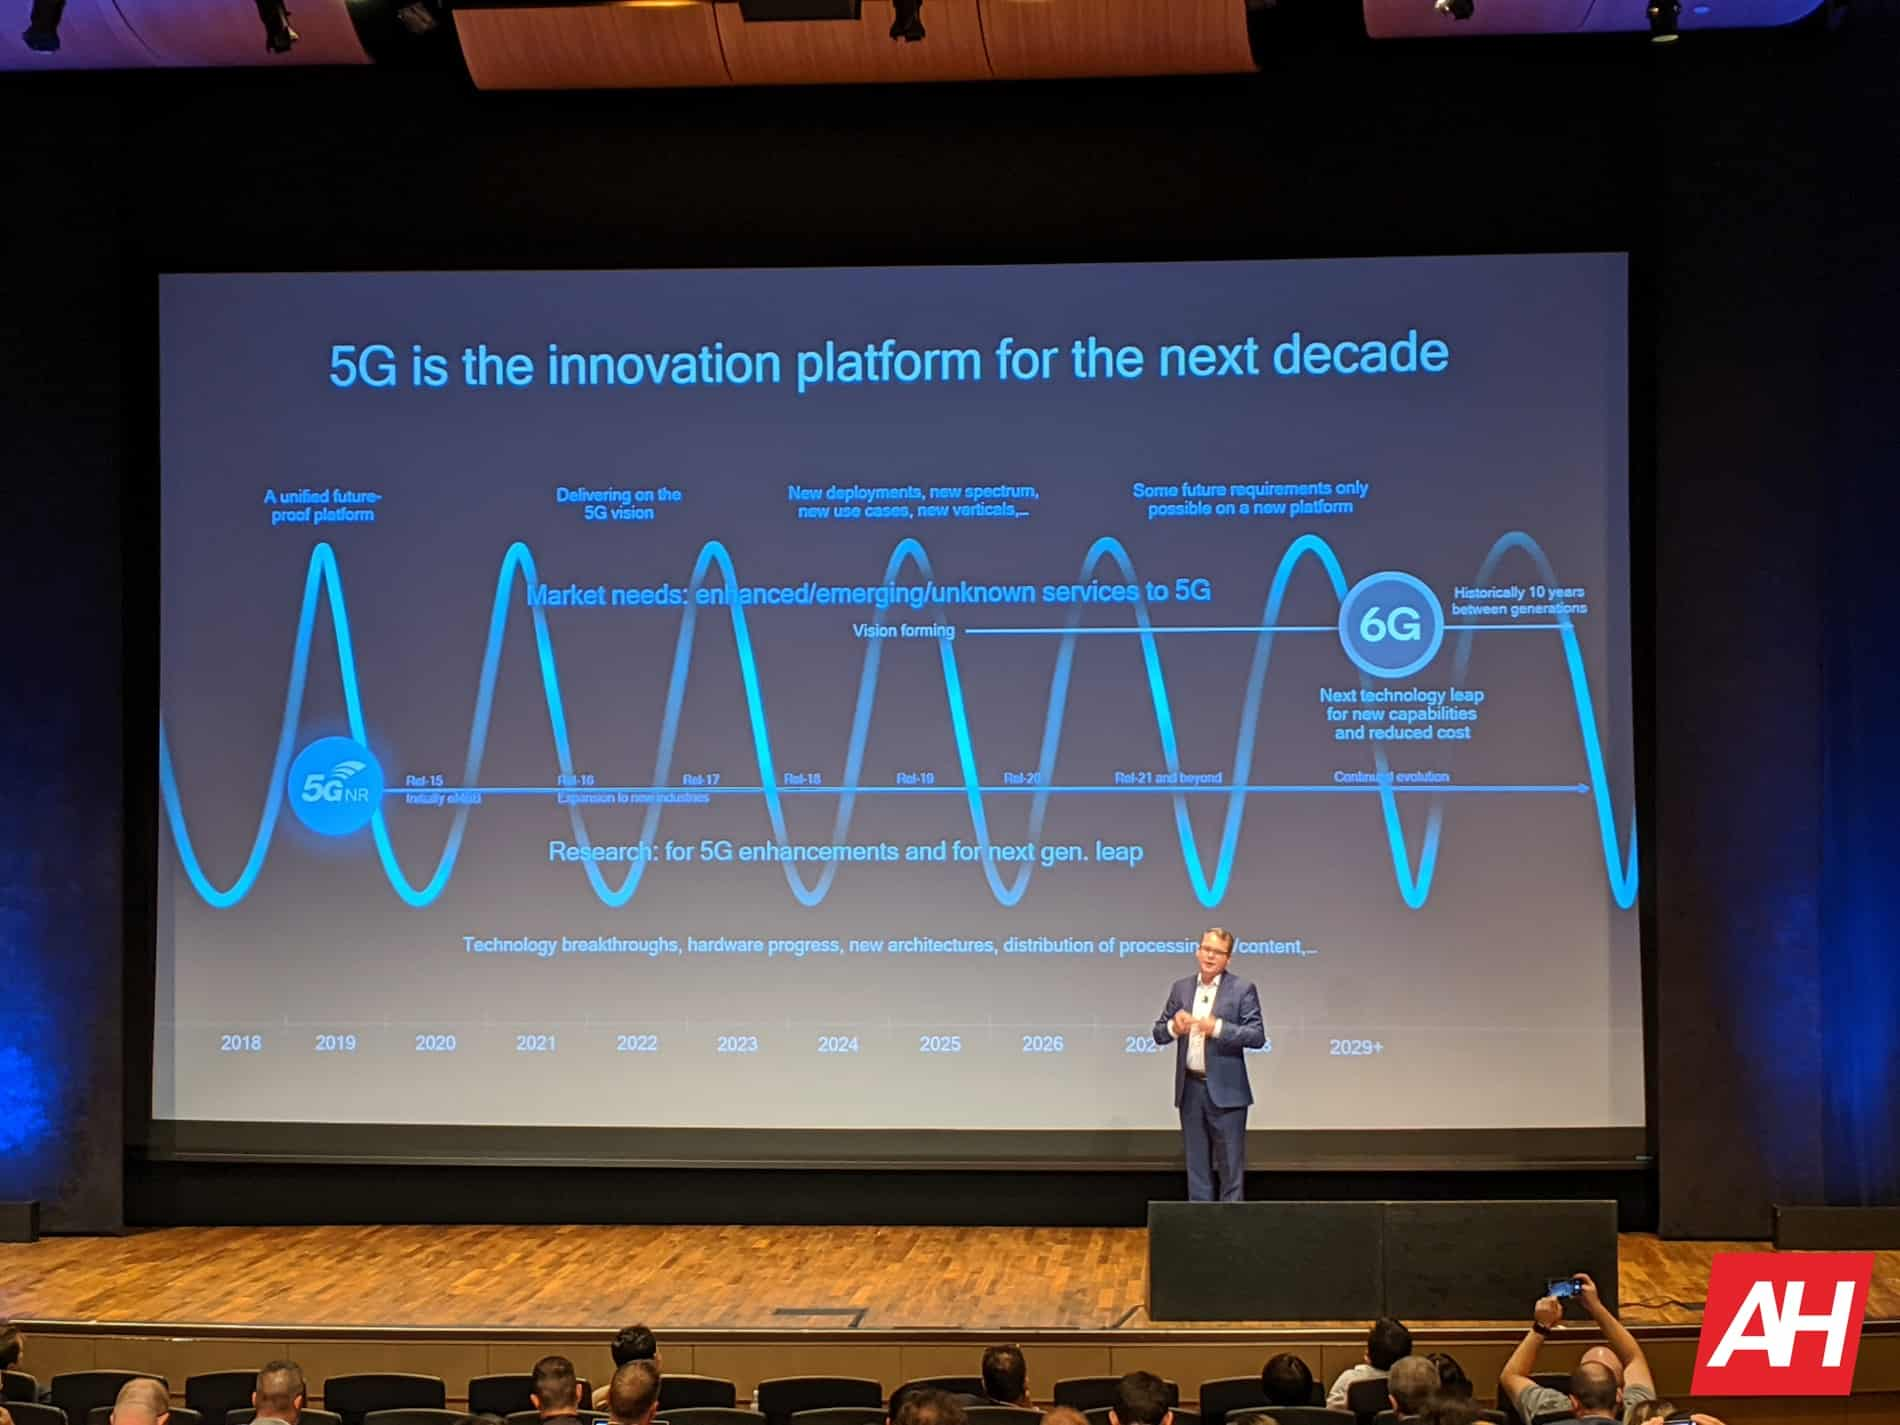 Qualcomm 5G Day 2019 AH 70